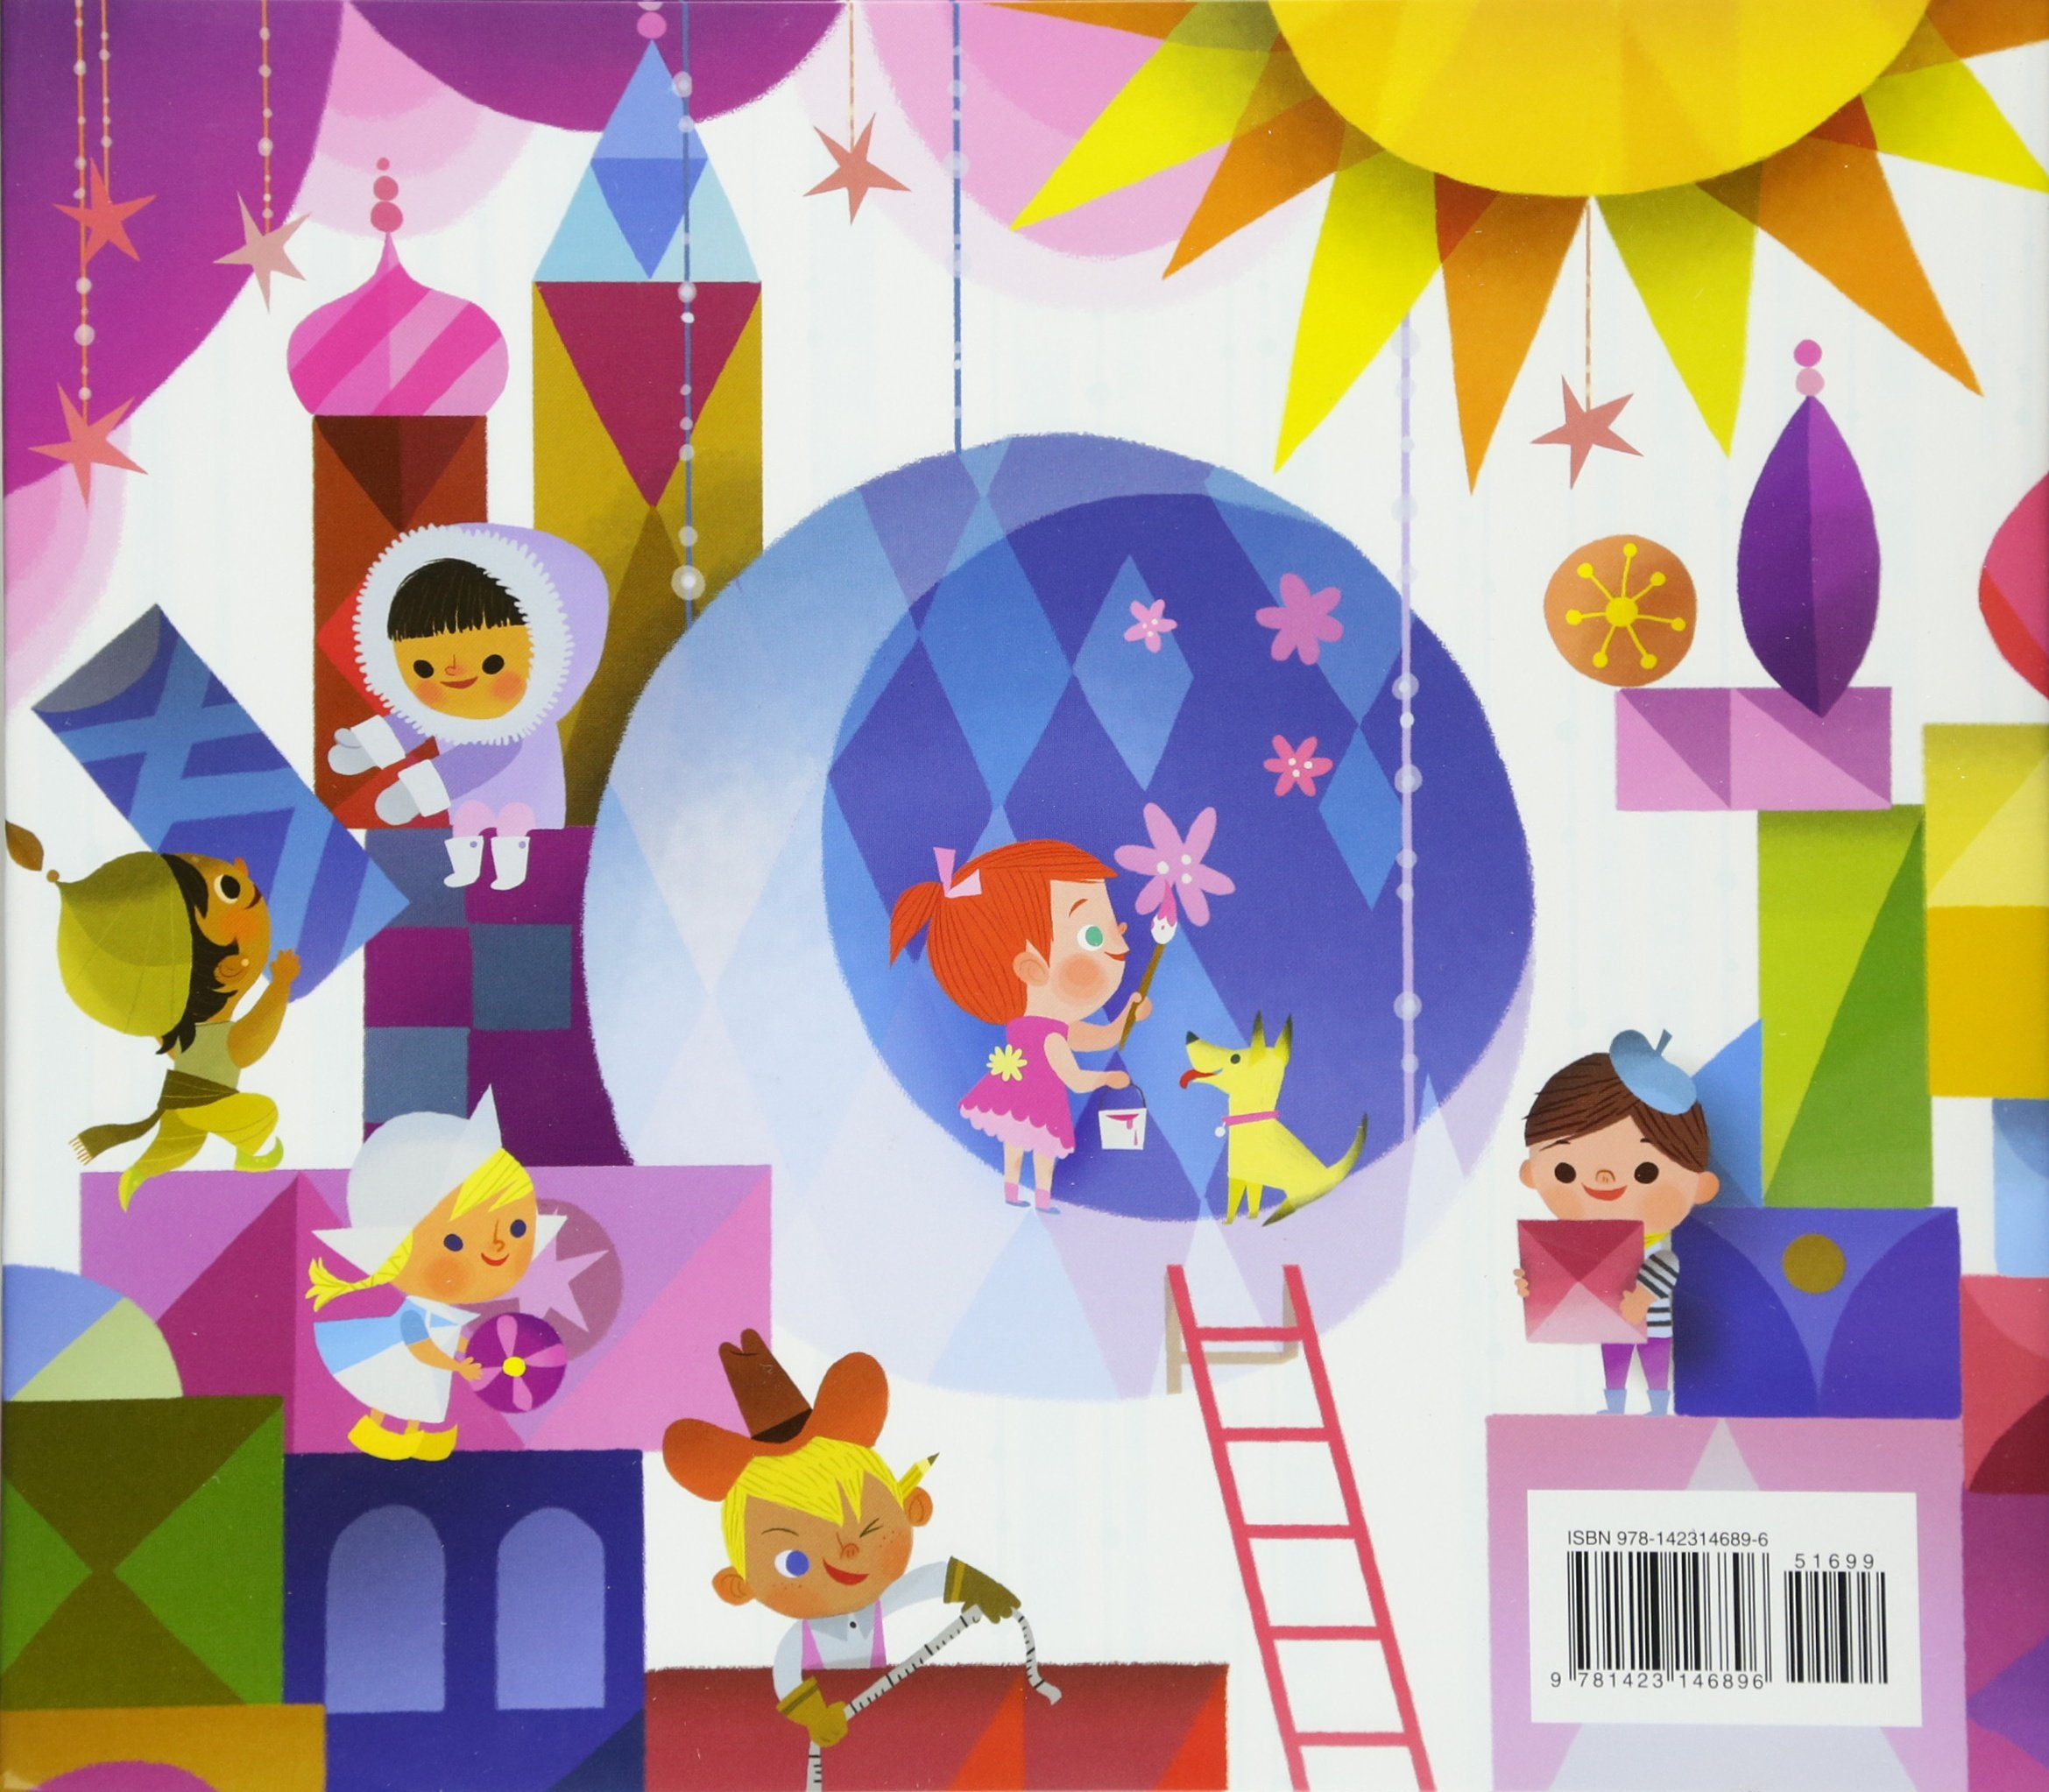 Disney parks presents its a small world richard m sherman disney parks presents its a small world richard m sherman robert b sherman joey chou 9781423146896 amazon books fandeluxe Image collections